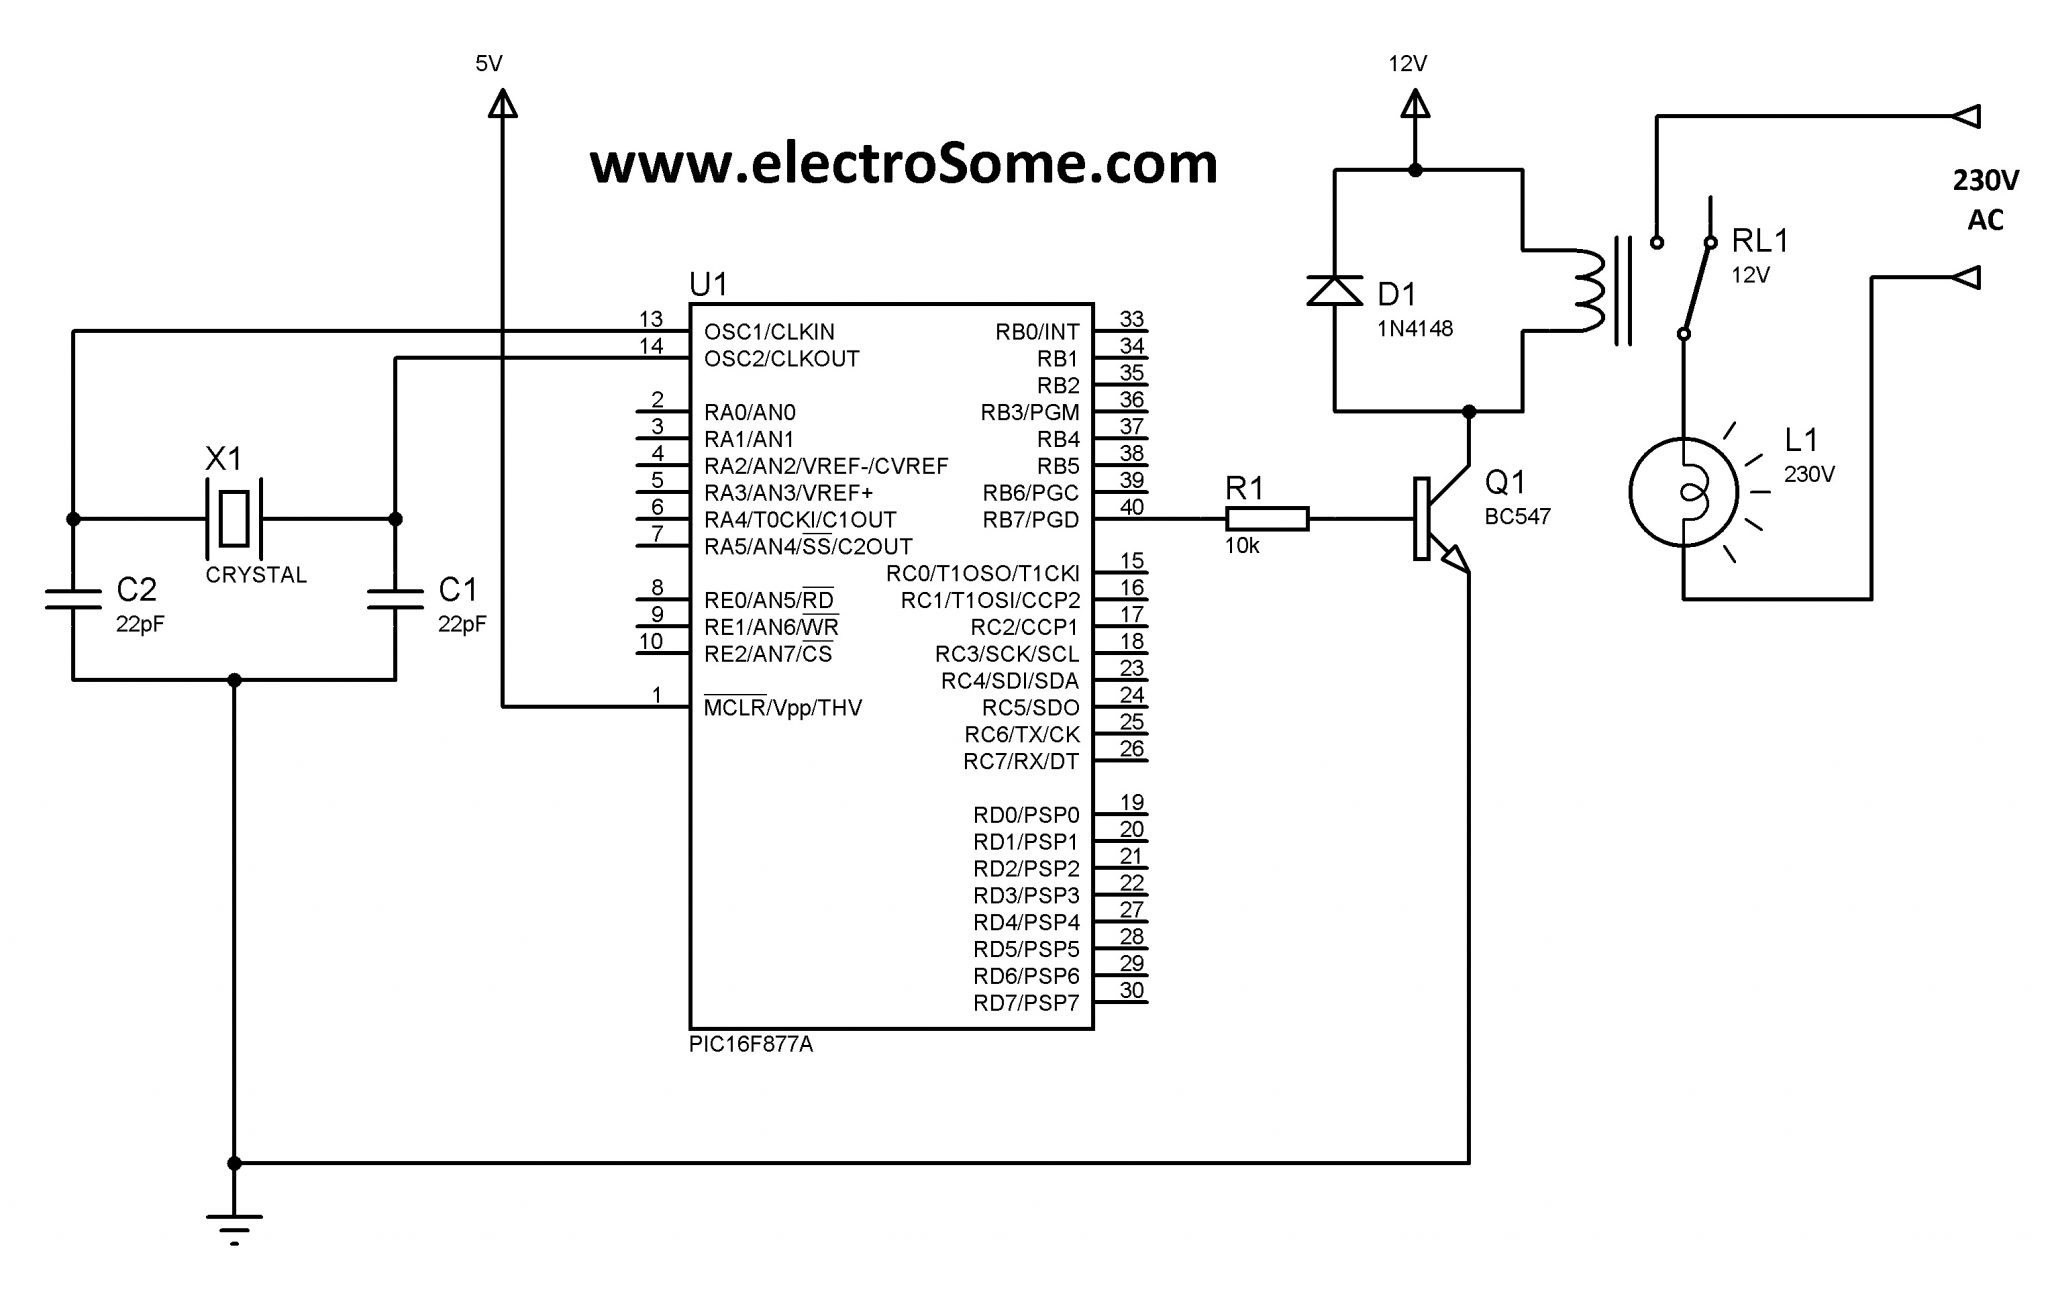 Interfacing Relay With Pic Microcontroller Mikroc Water Level Controller Circuit Using Transistors And Ne555 Timer Ic Transistor